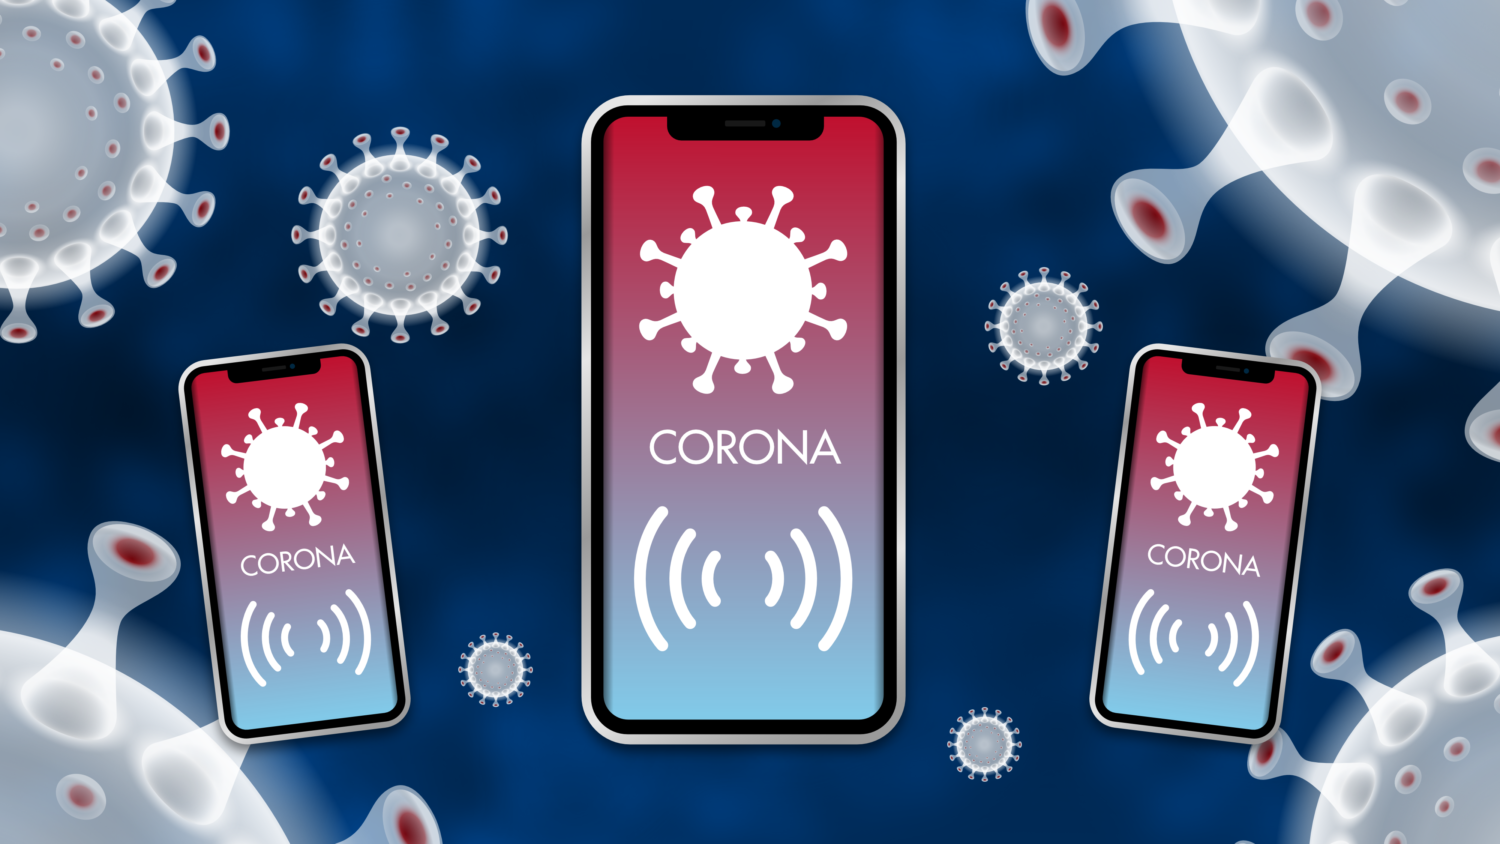 Gratis Download von iXimus.de: Smartphone, iPhone, Corona-App, Corona-Warn-App, iOS, Adroid, Deutschland, Covid-19, Corona, Application, transparenter Hintergrund, #000248